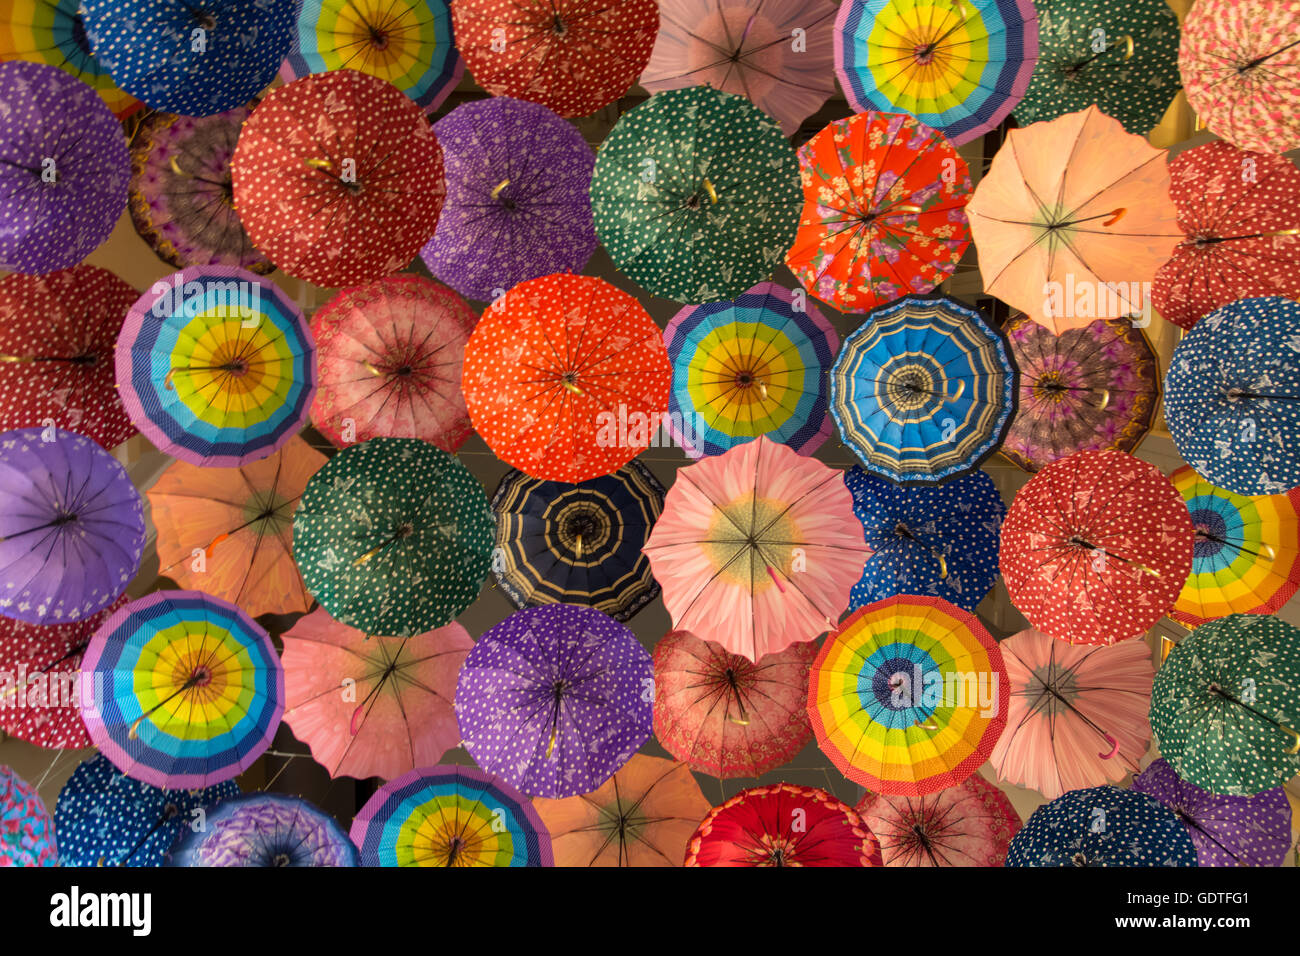 Directly Below Full Frame View of Large Group of Colorful Umbrellas Hanging - Stock Image